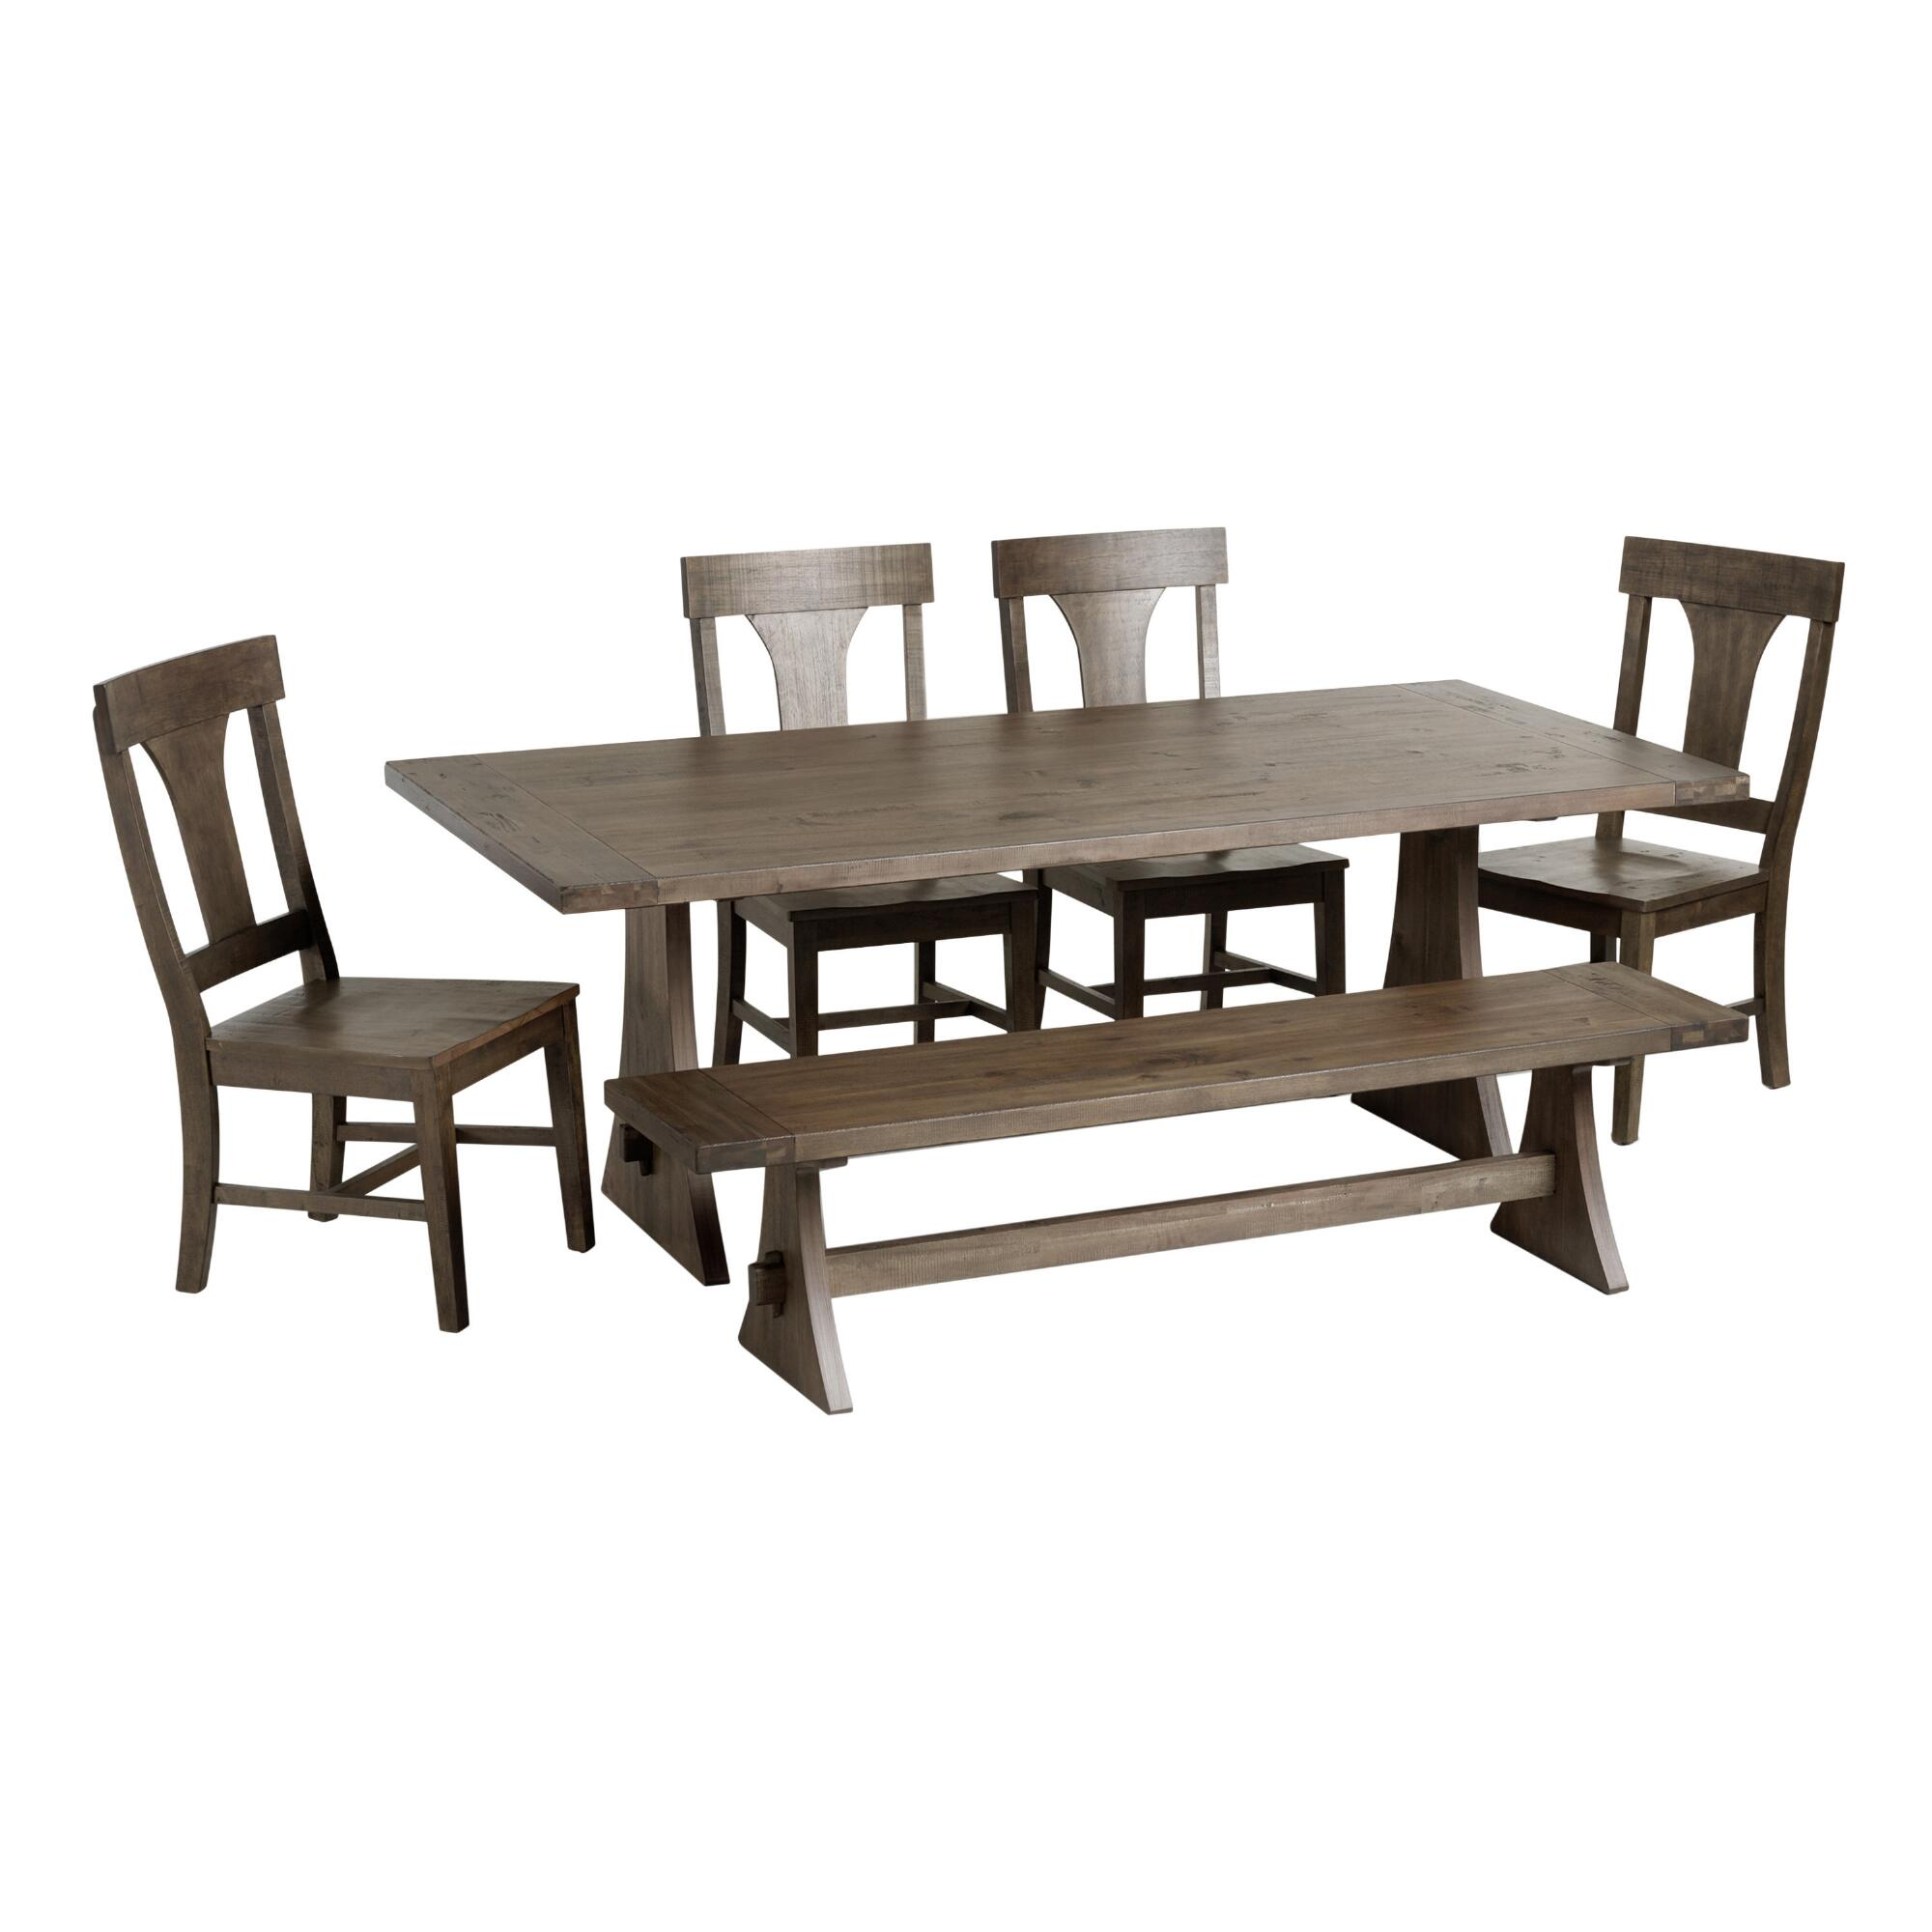 Dining Room Furniture Sets, Table & Chairs | World Market